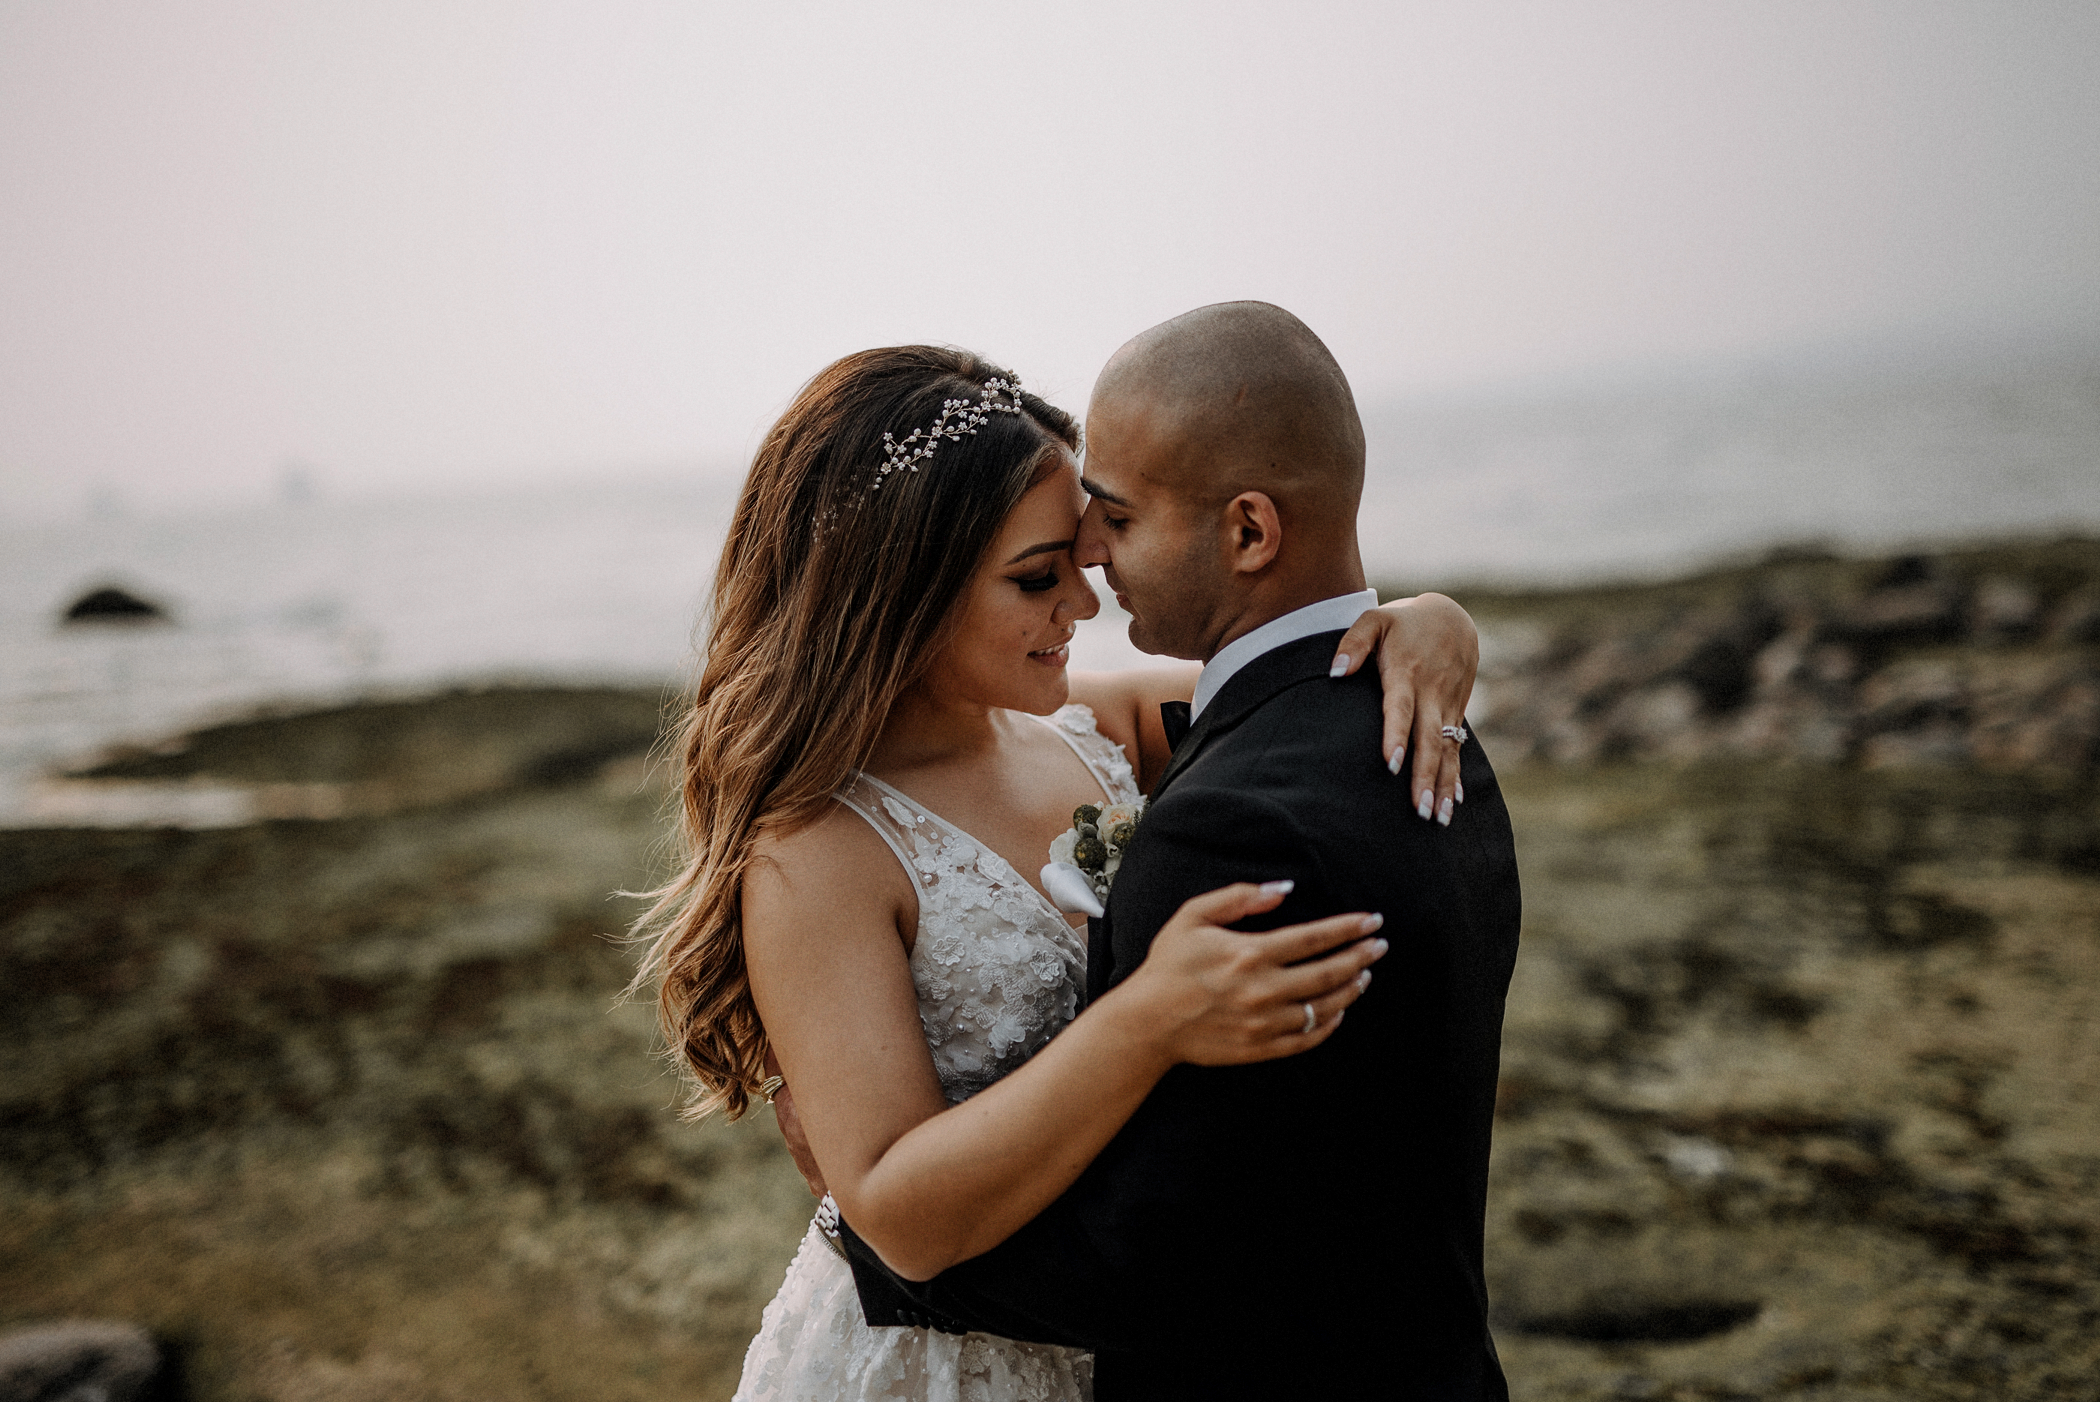 031-kaoverii-silva-LM-wedding-vancouver-photography-elopement-blog.png